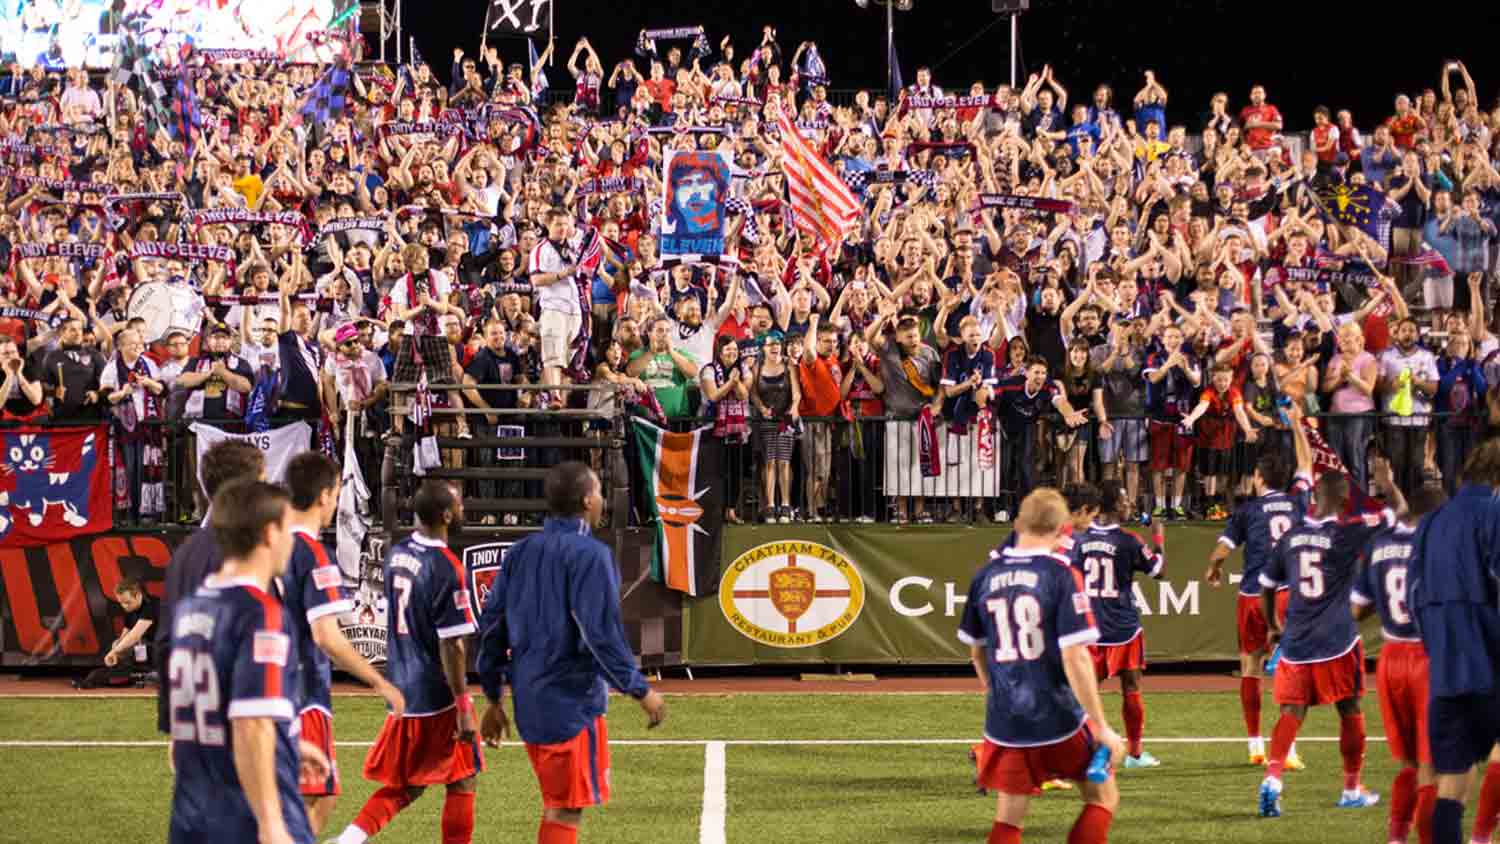 Indy Eleven Soccer